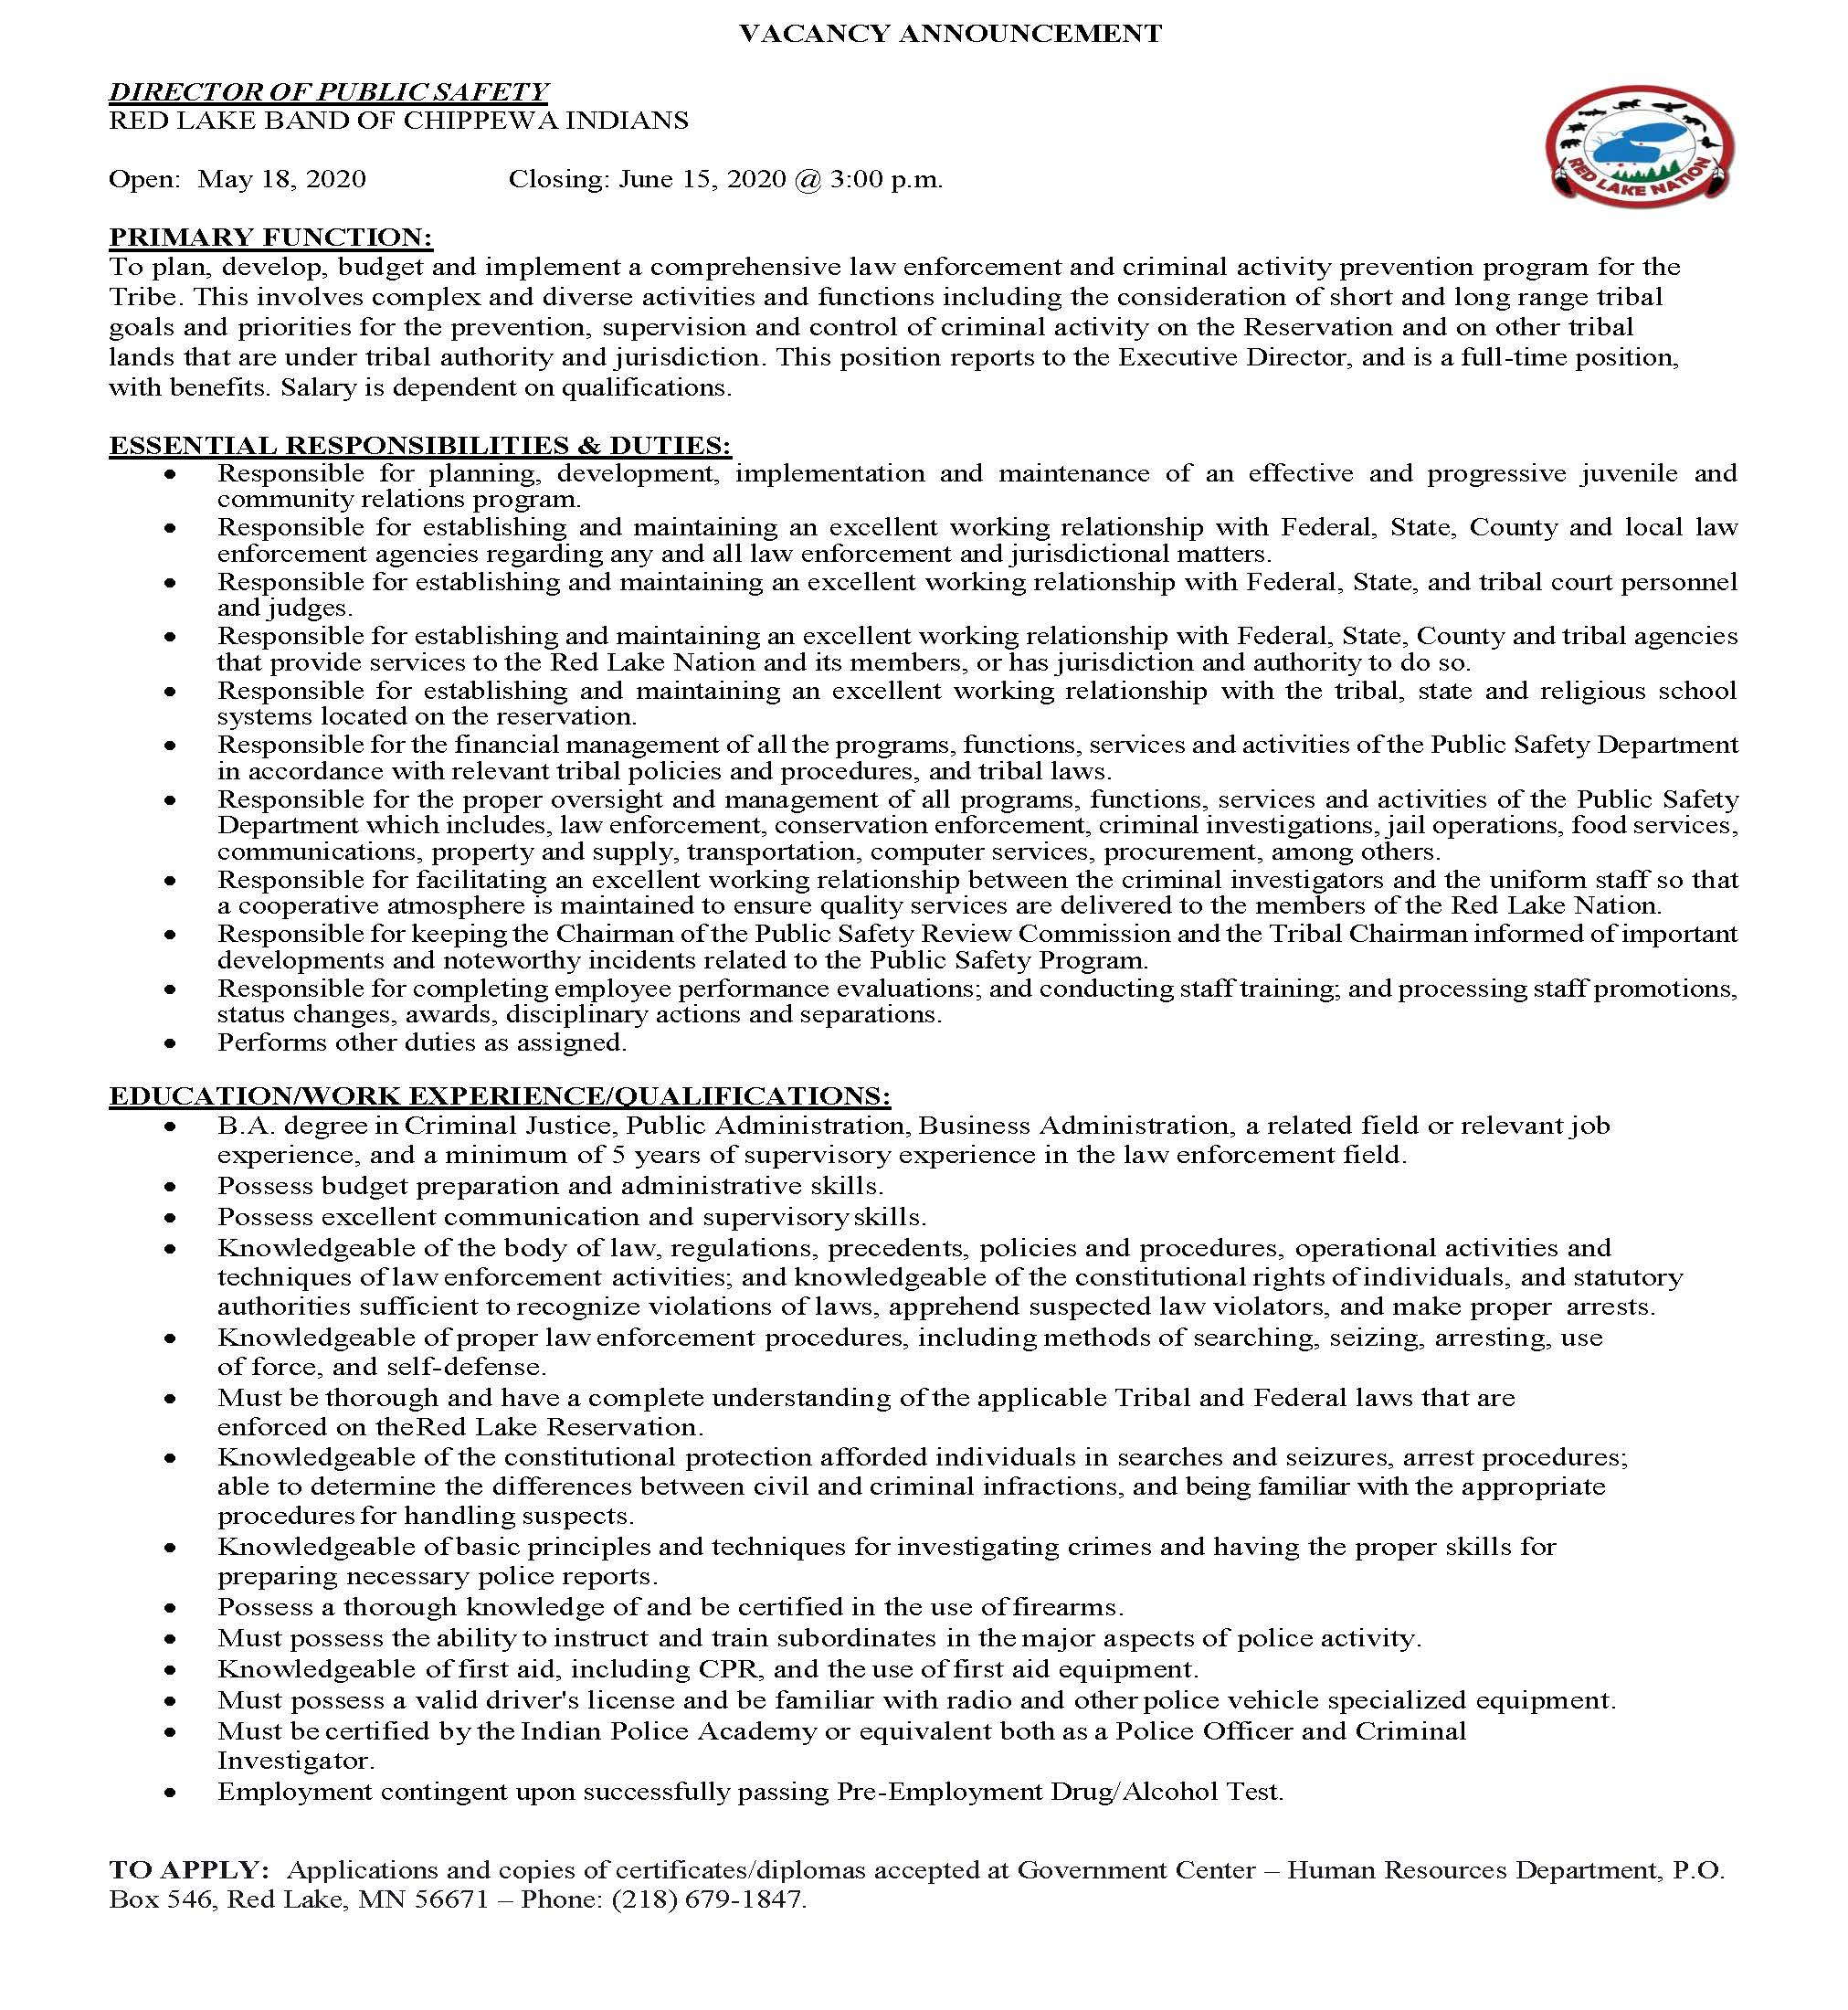 Director of Public Safety-RLBCI-Job Announcement-5-18-2020